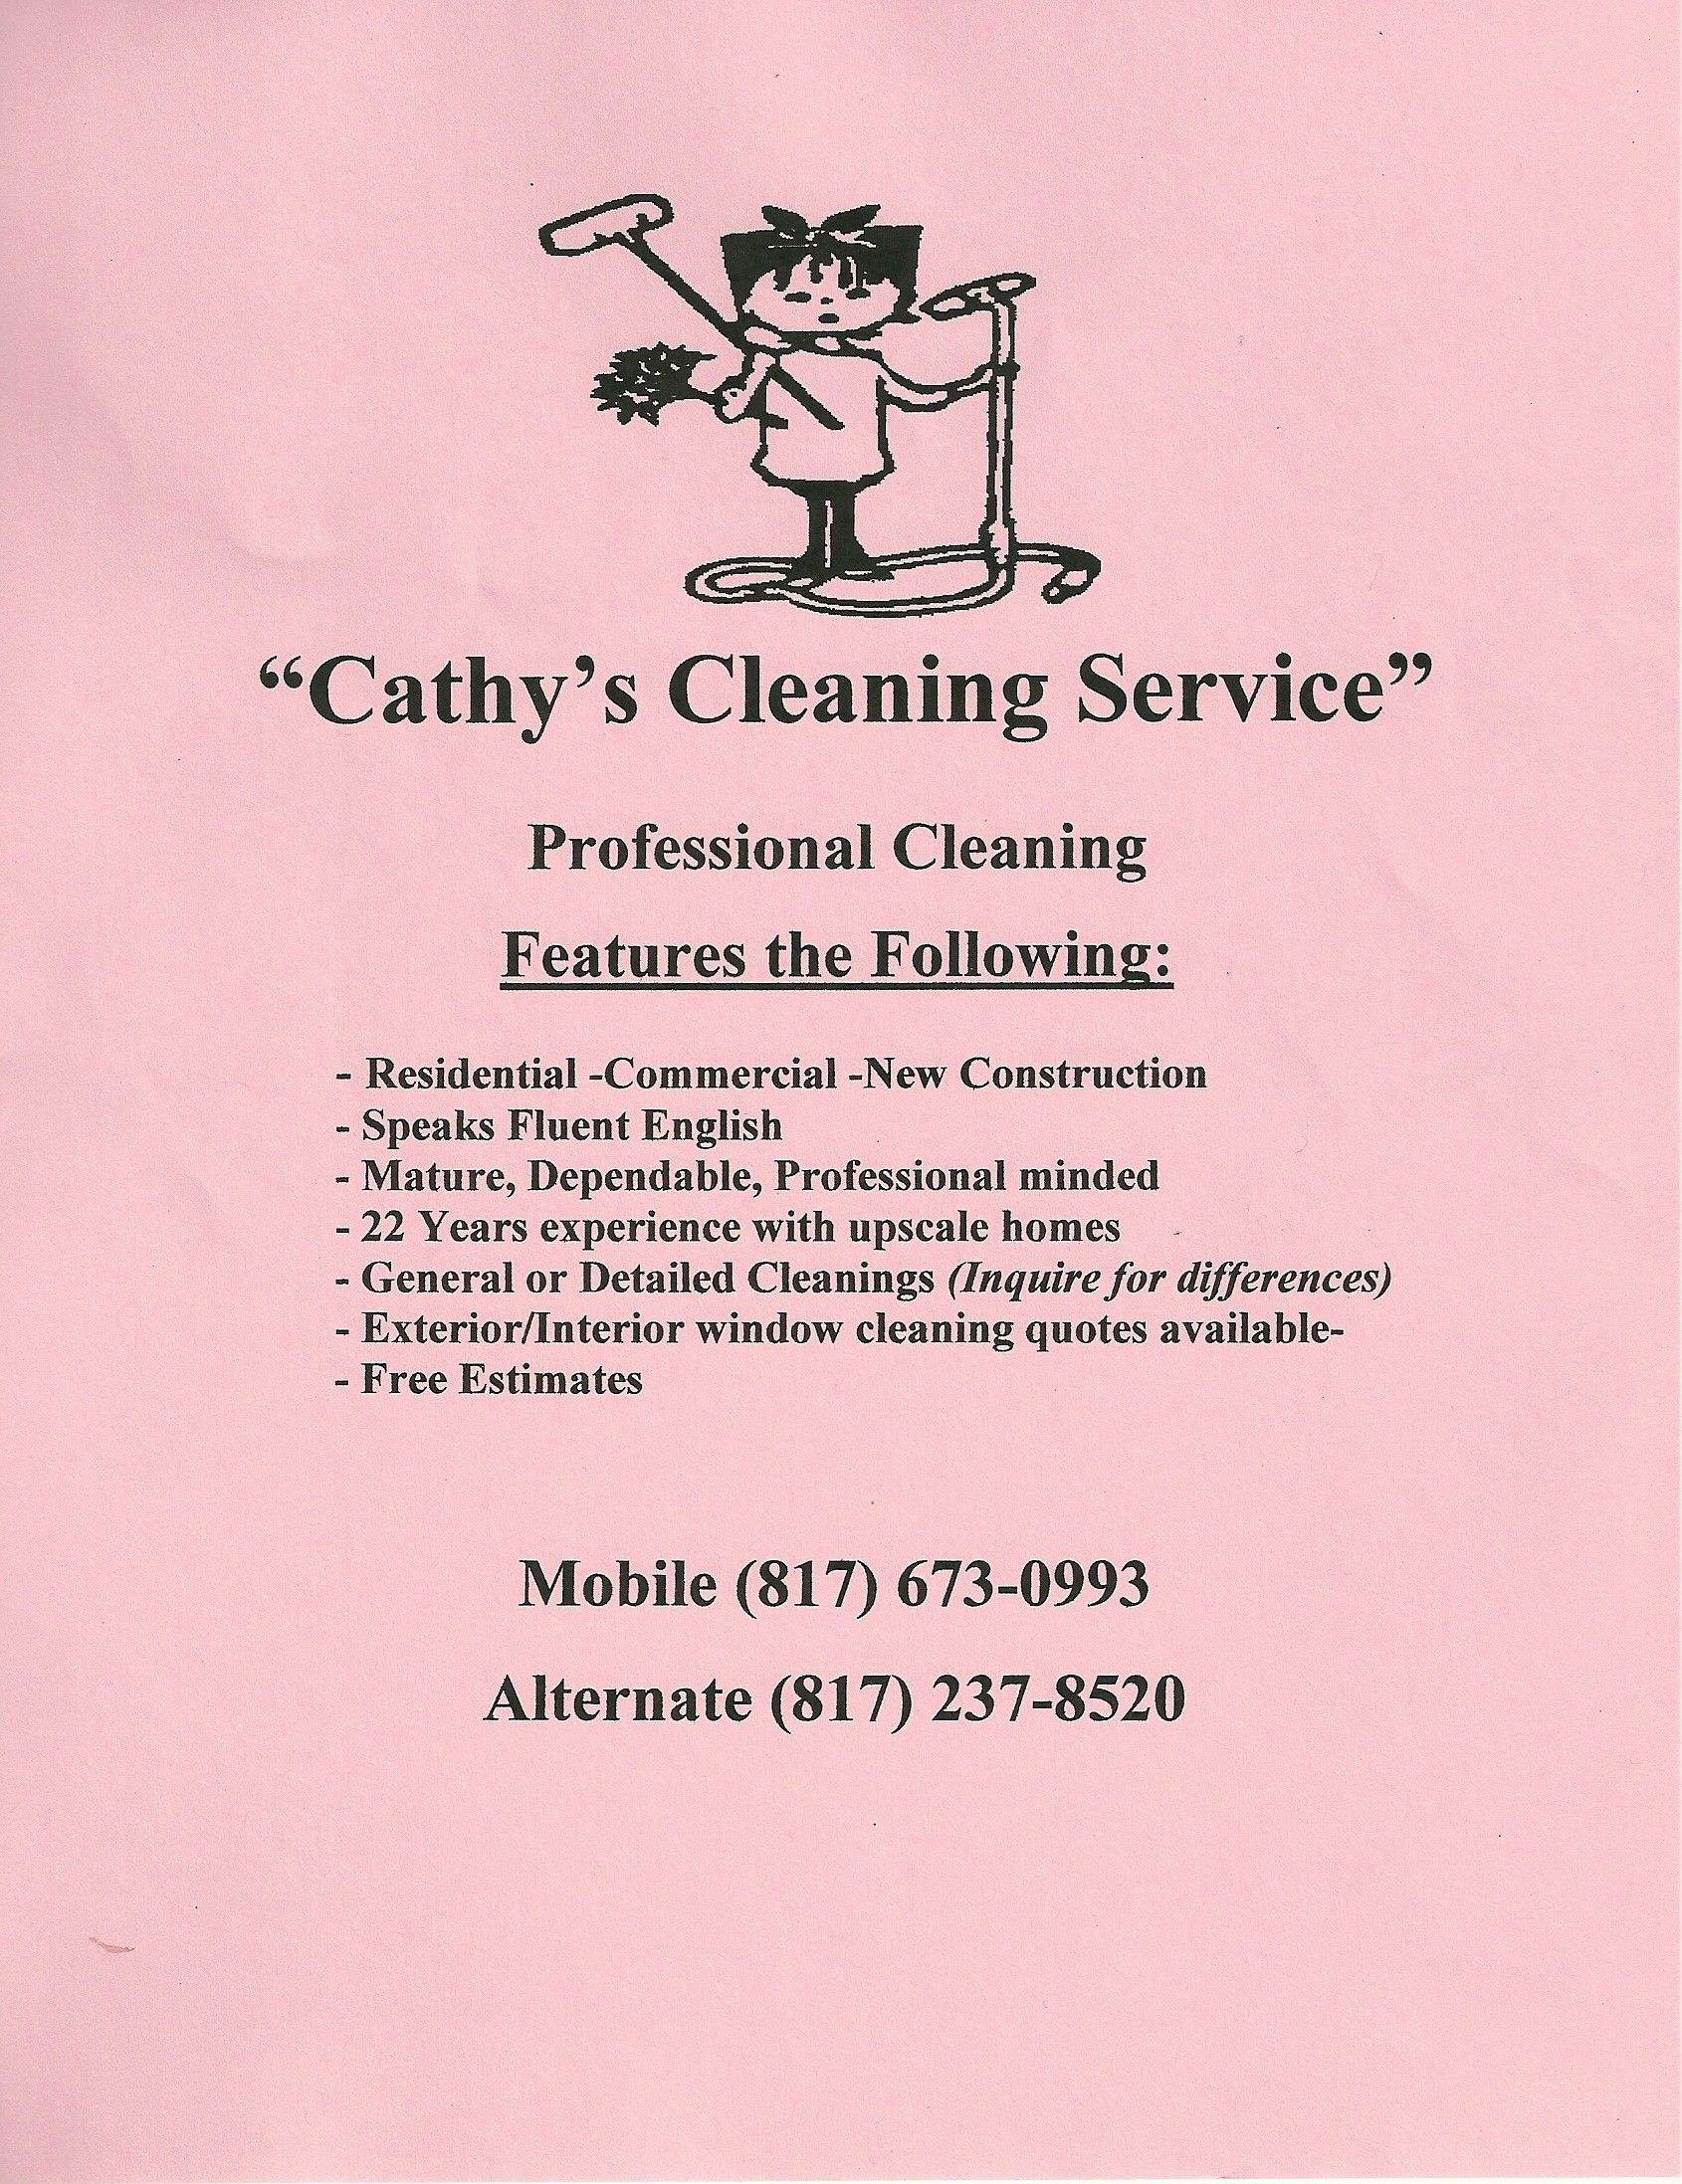 House Cleaning Services Creative Marketing Materials For